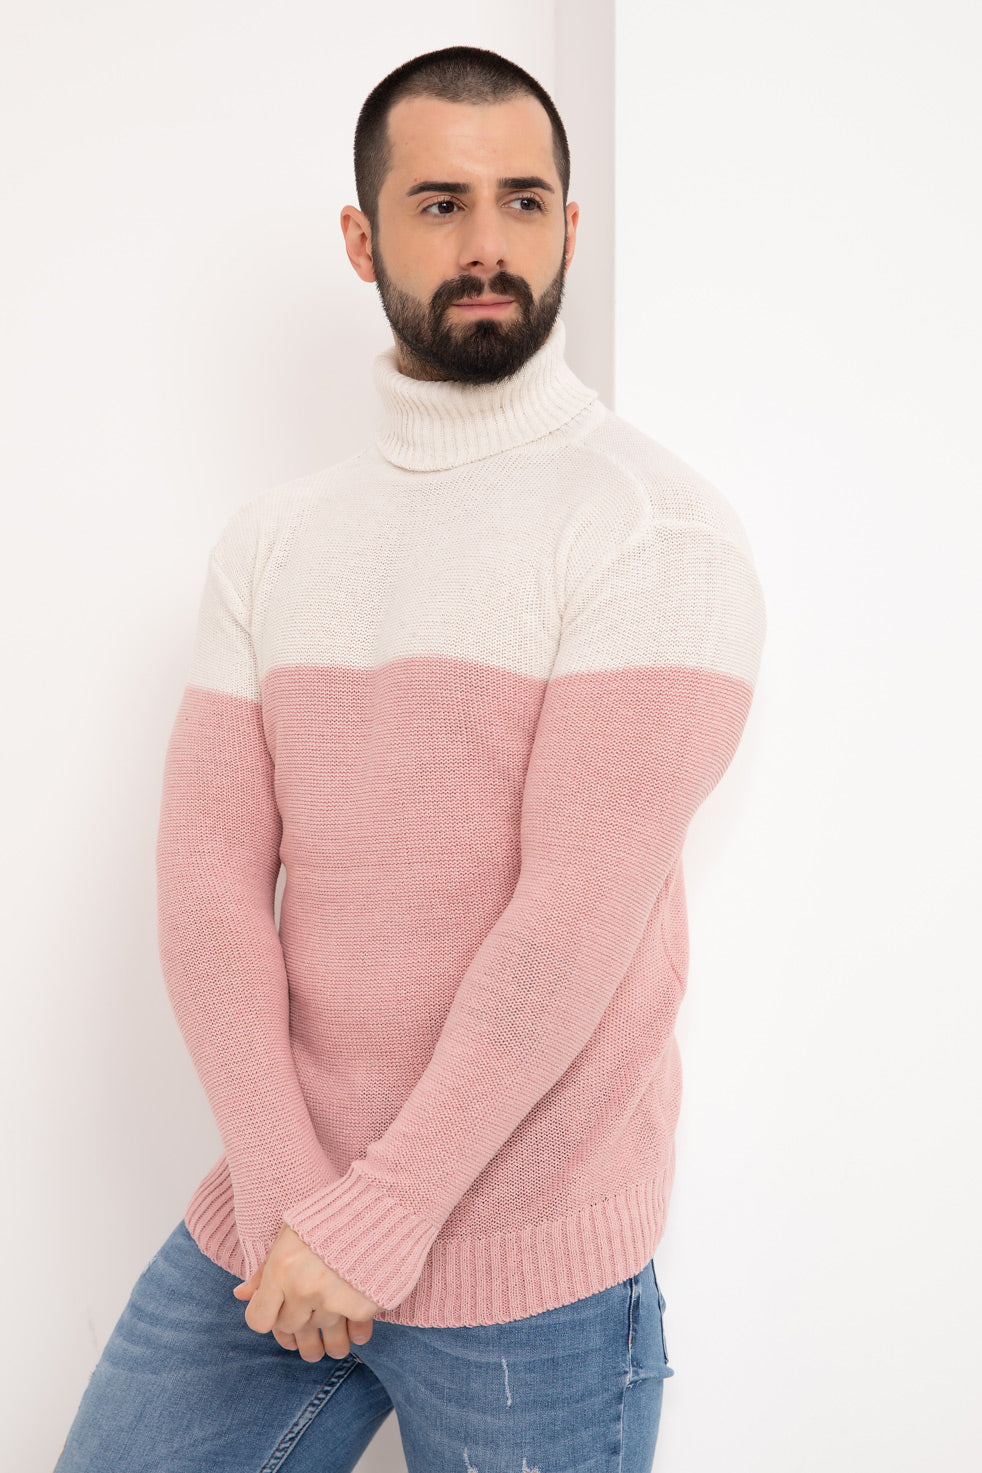 Rose powder Double Color Neck Men's Knitwear Sweater